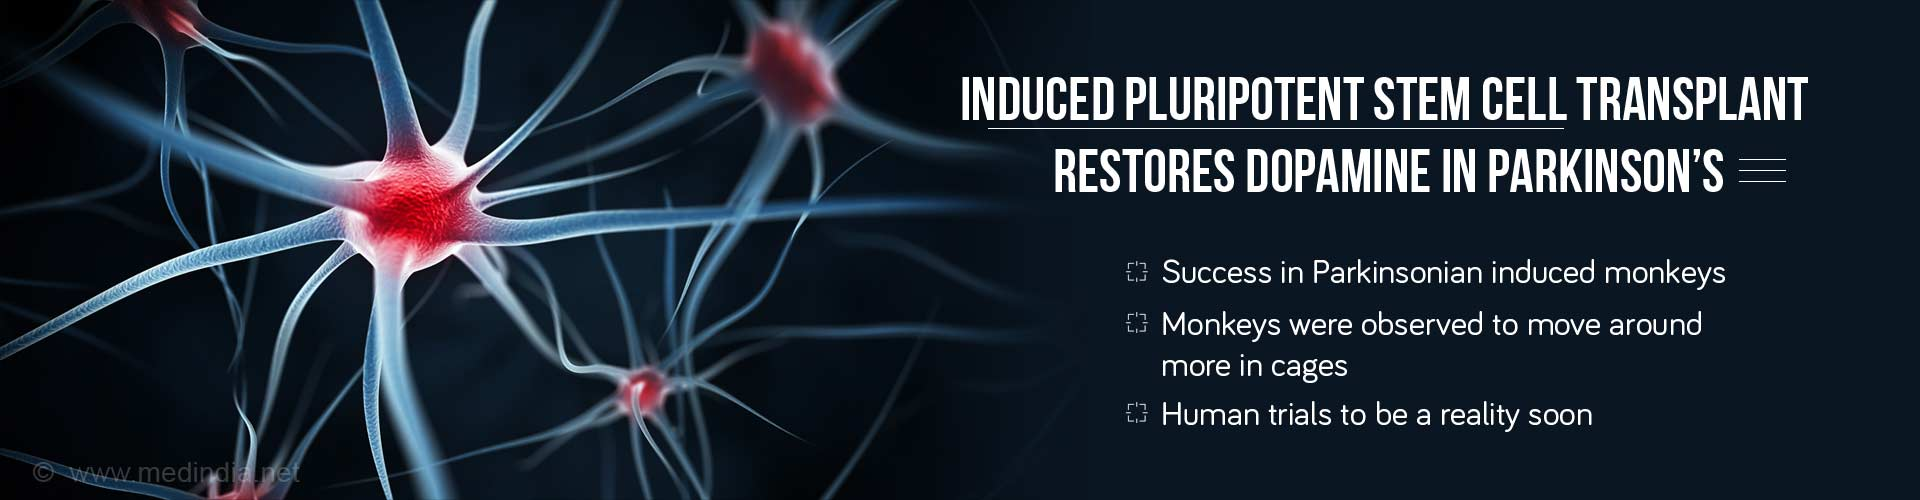 Hope for Parkinson's Cure Rises as Stem Cell Therapy Restores Dopamine